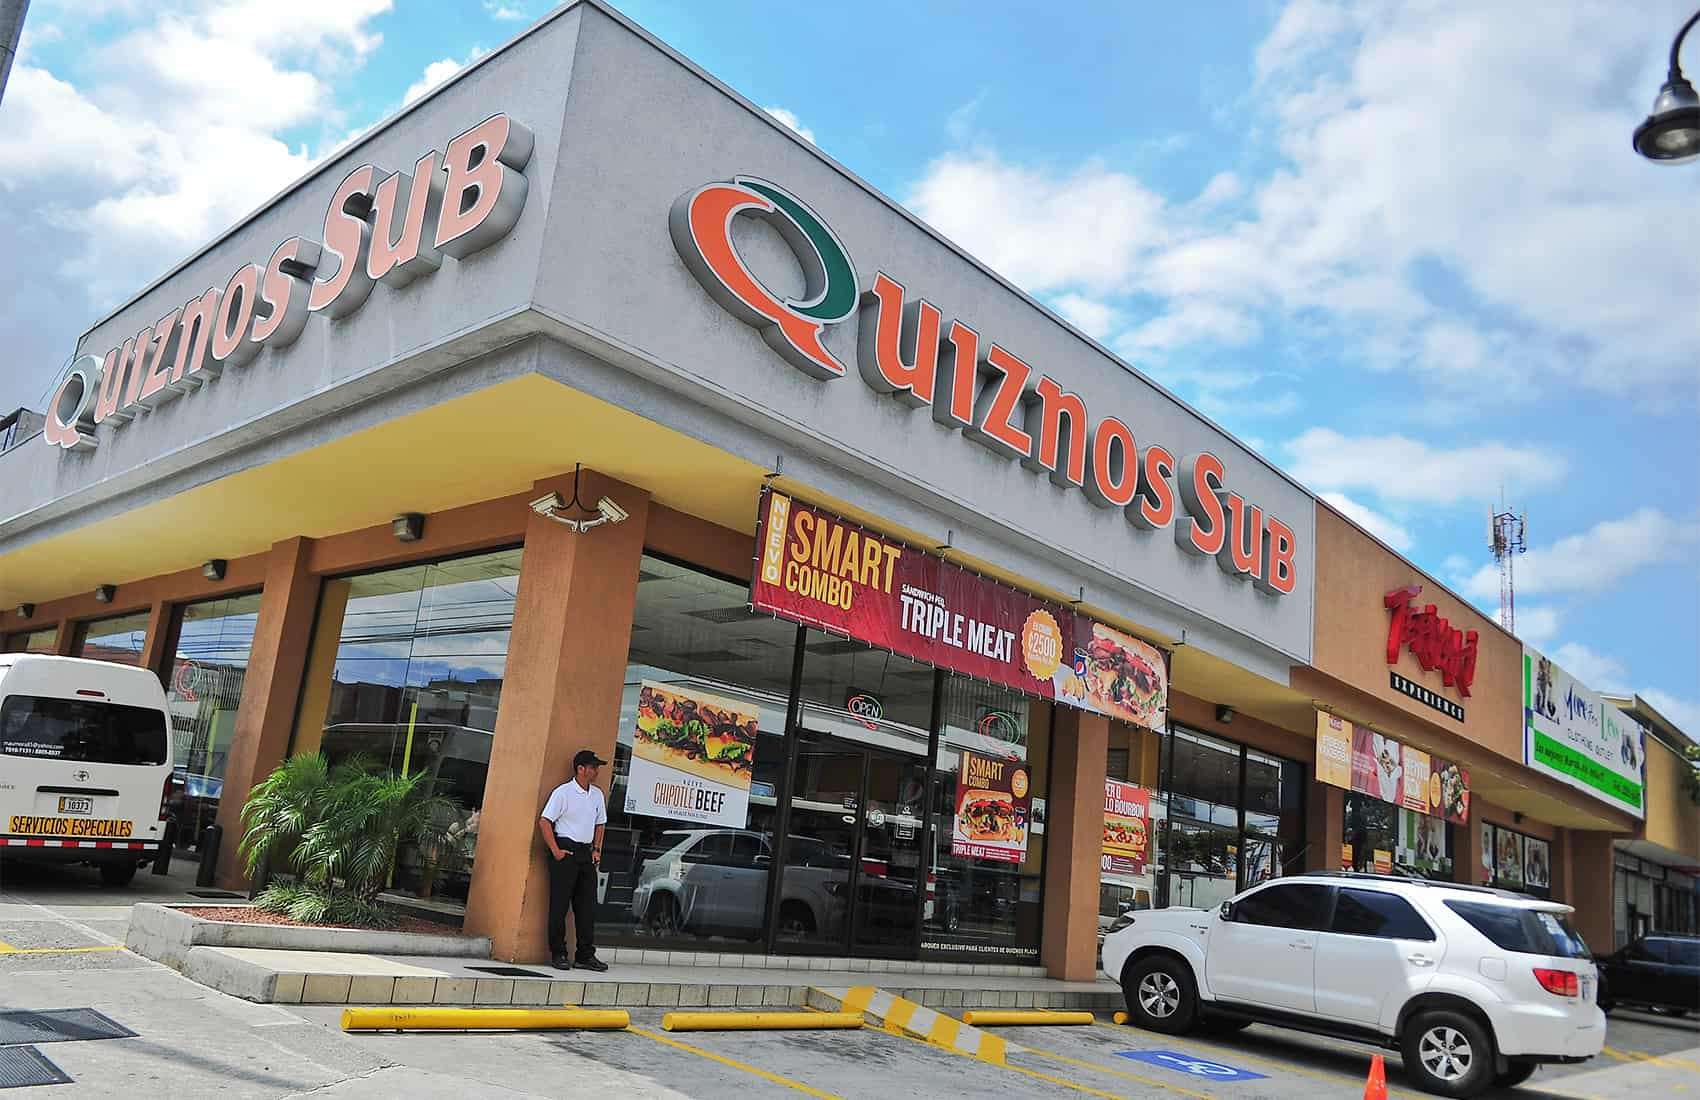 Quiznos subs & Teriyaki restaurants